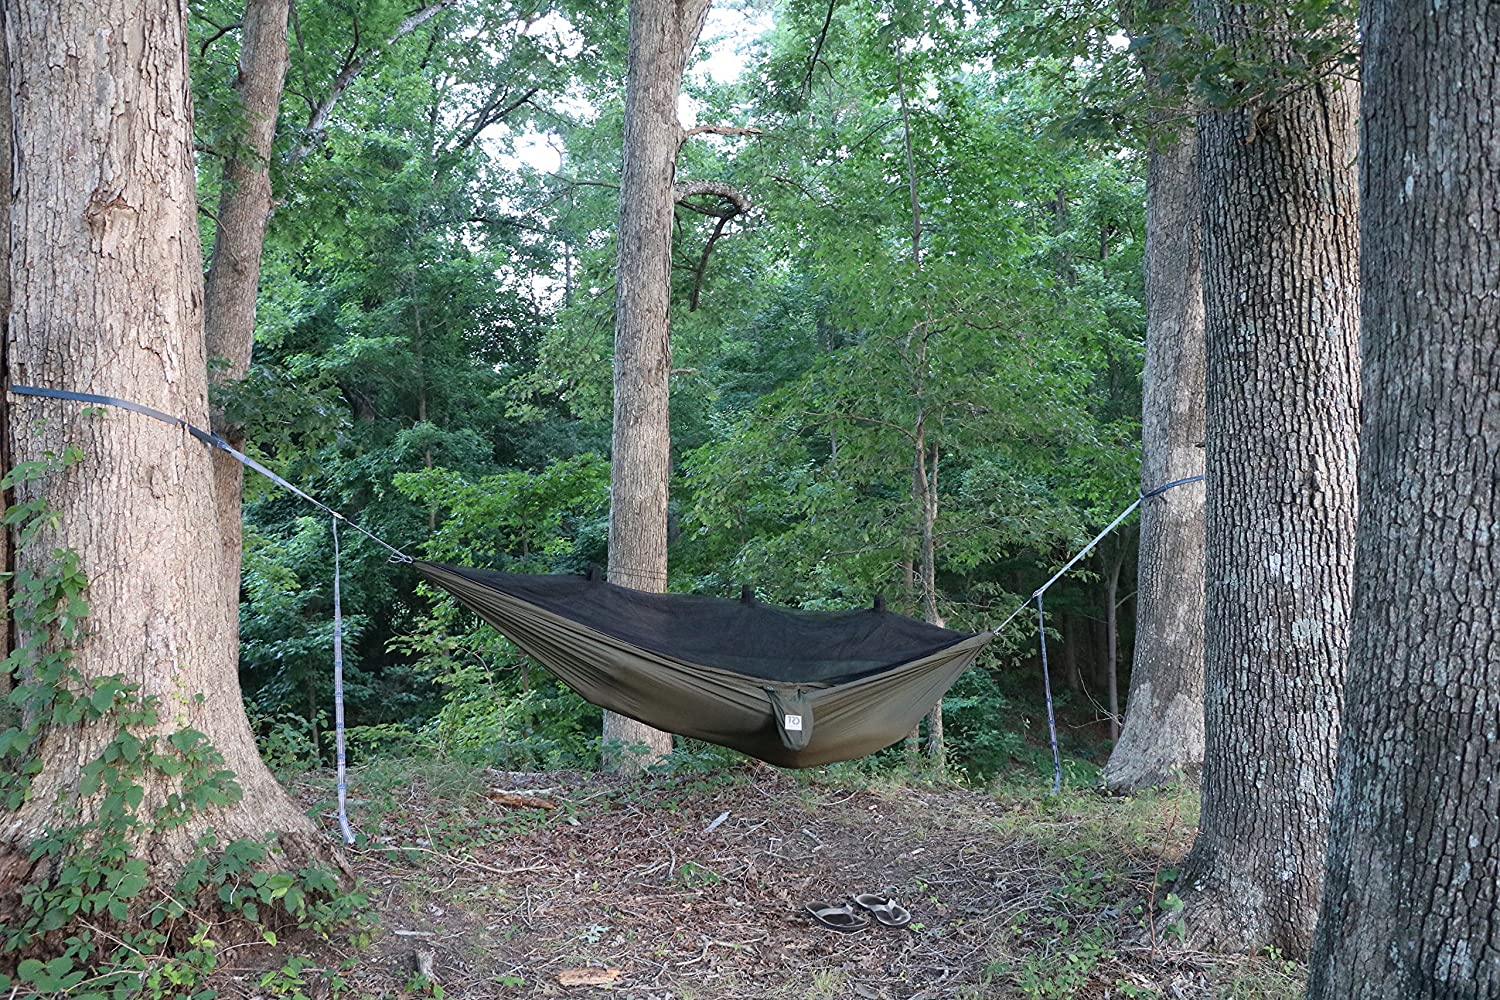 hatteras inviting decor prodigal on dfo by home woot tufted hammocks pieces prodigalpieces space creating outdoor an hammock